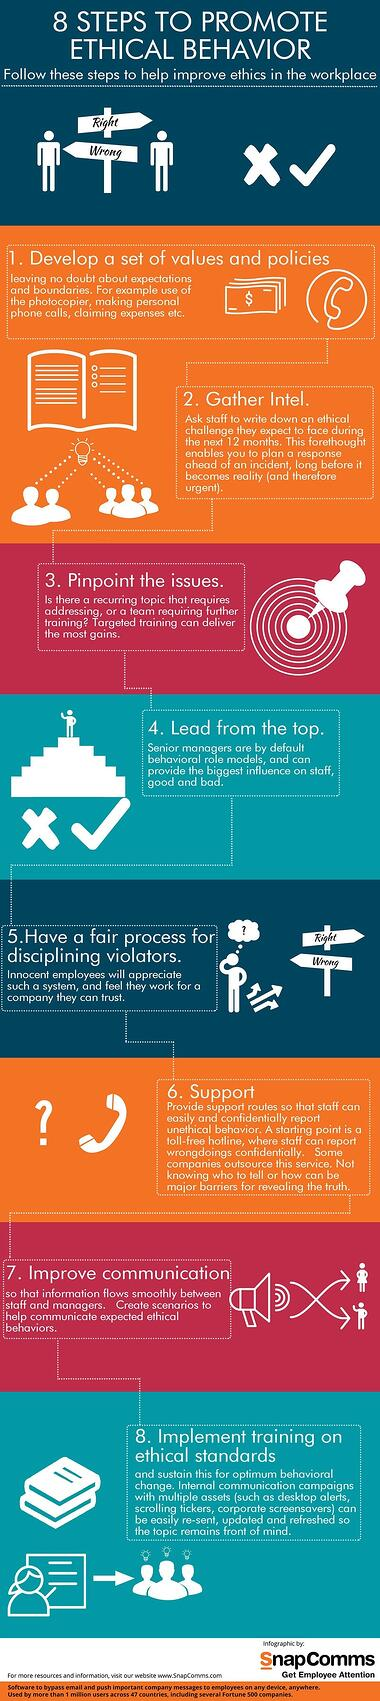 8 steps to promote ethical behavior infographic